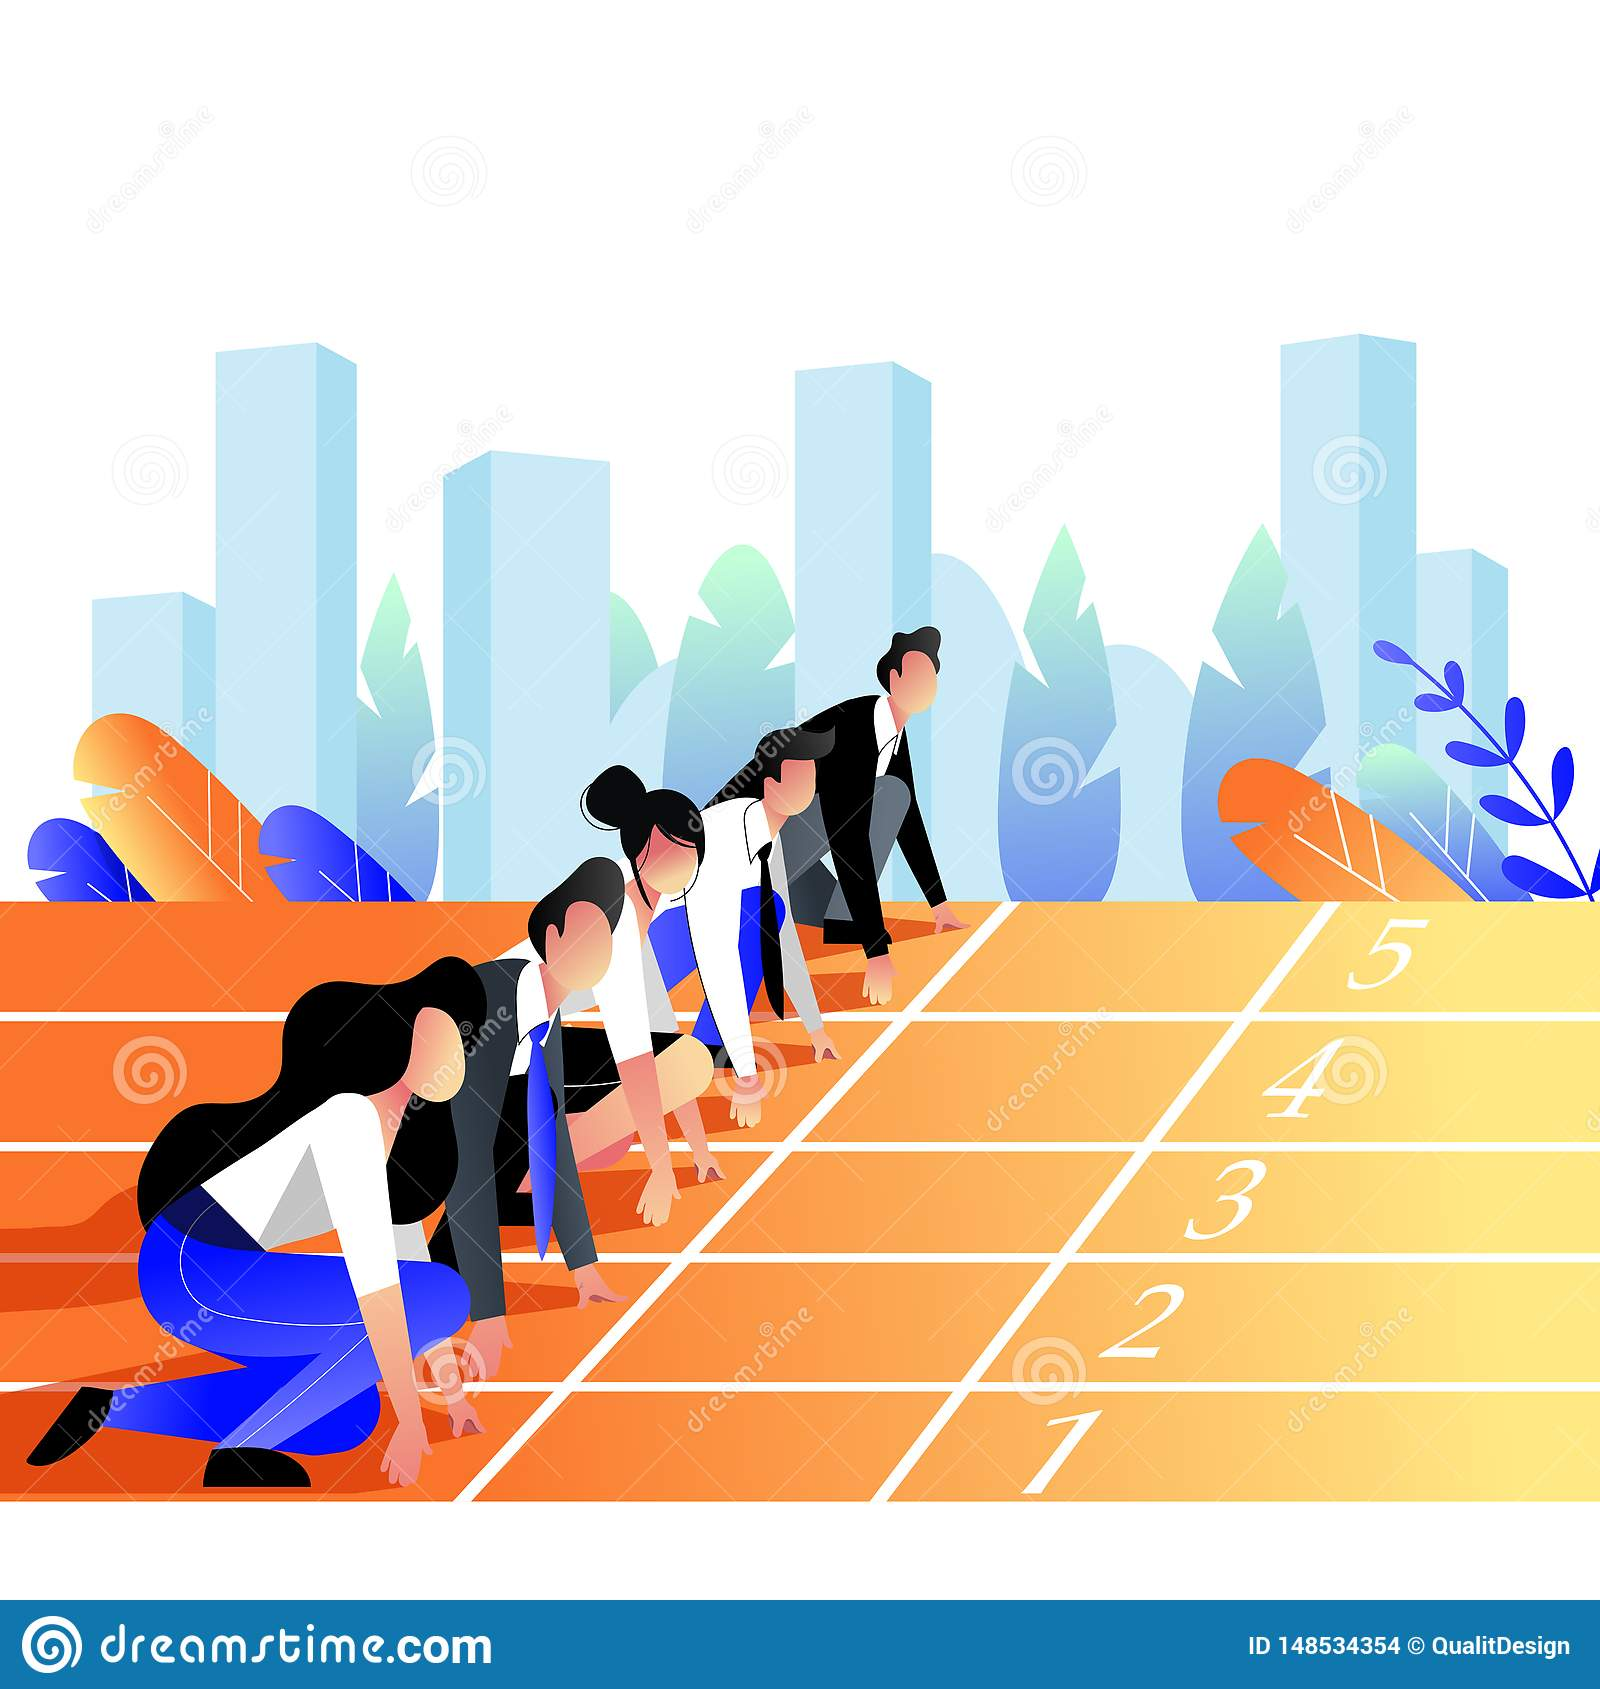 Business people race concept. Business people lined up getting ready for running on sport track. Vector illustration